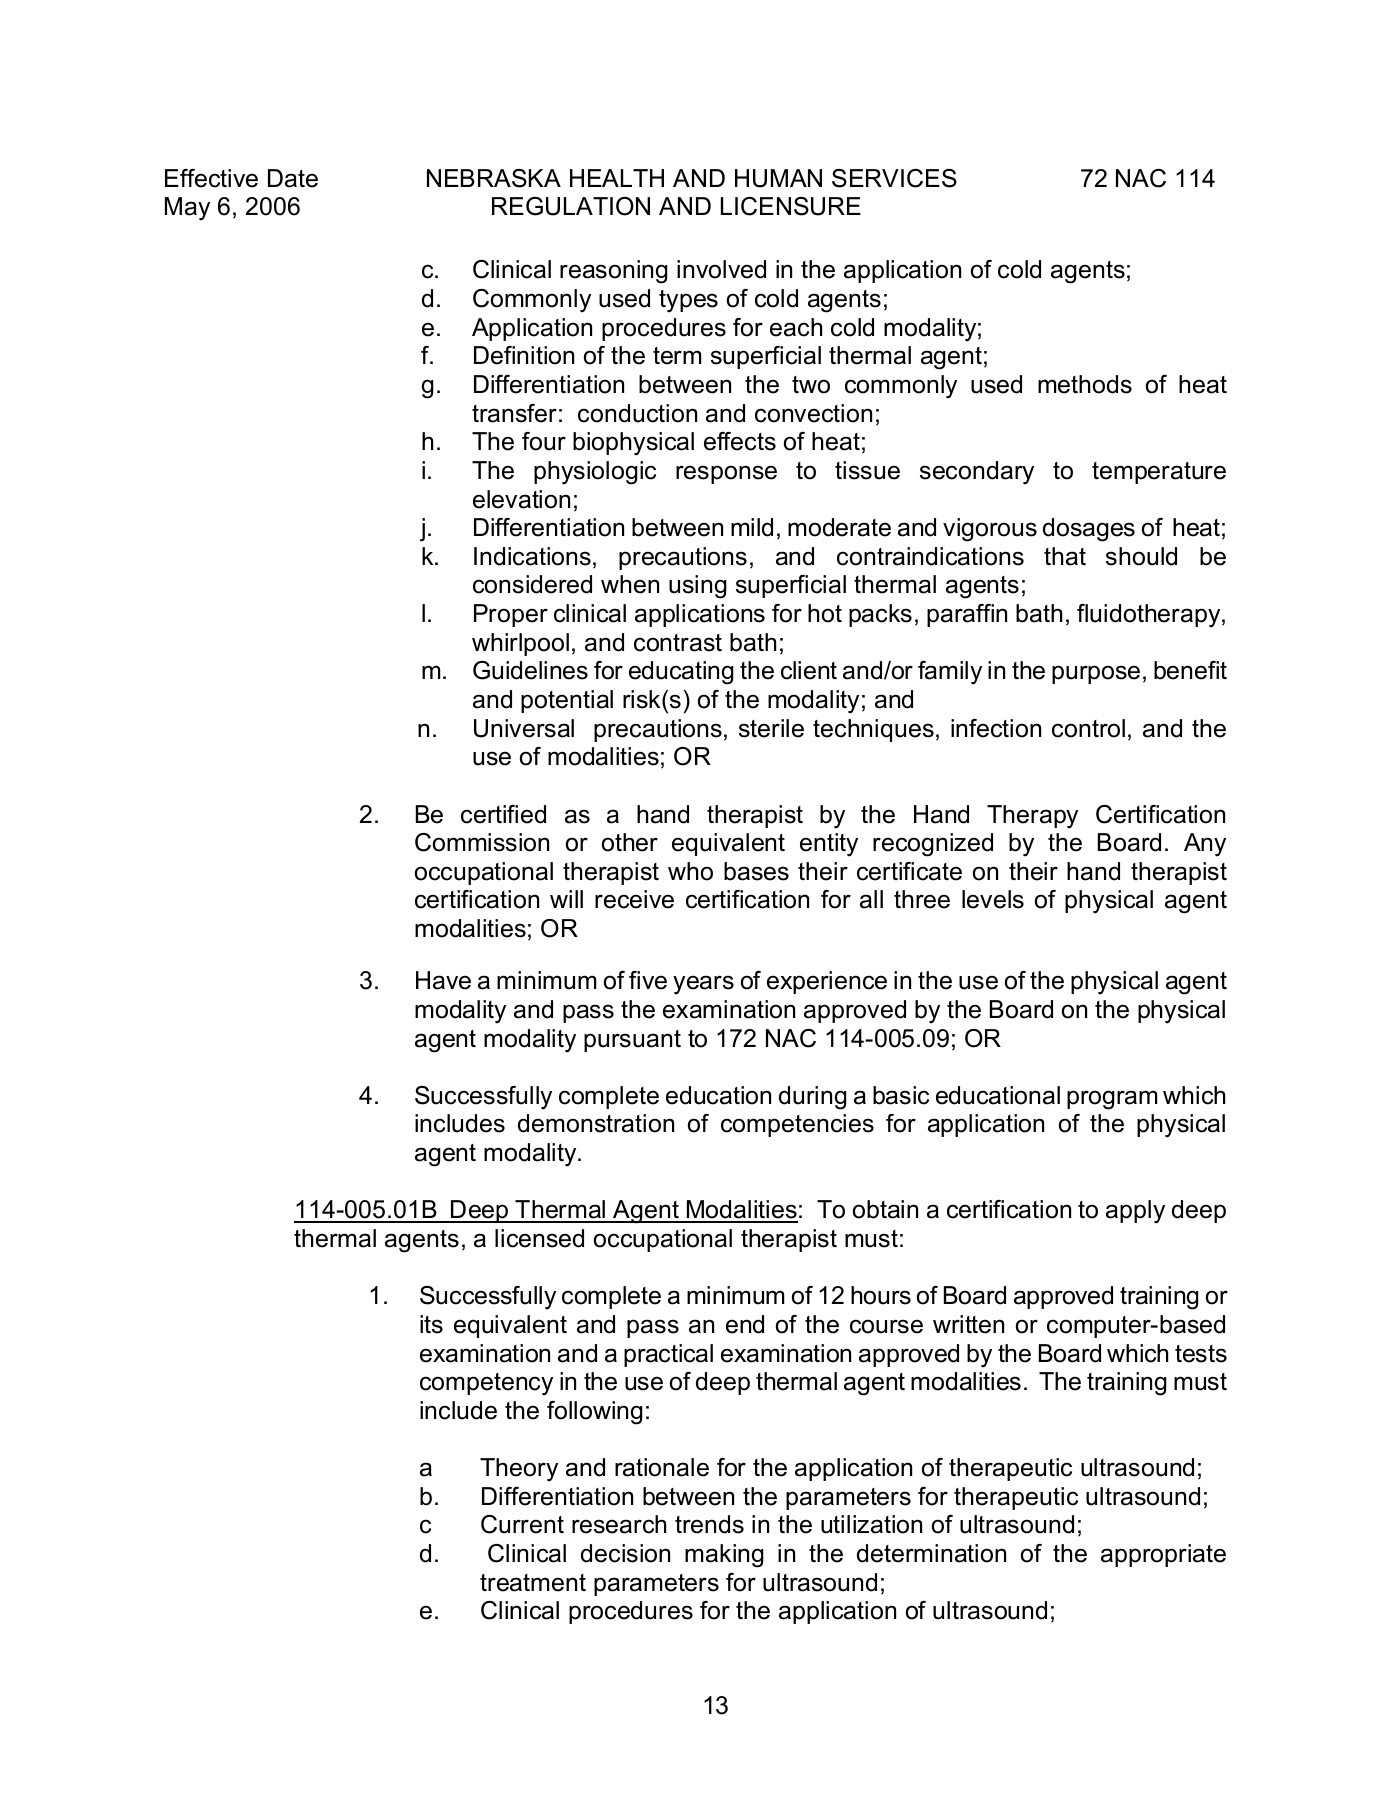 114 005 Requirements For Certification To Apply Physical Fliphtml5